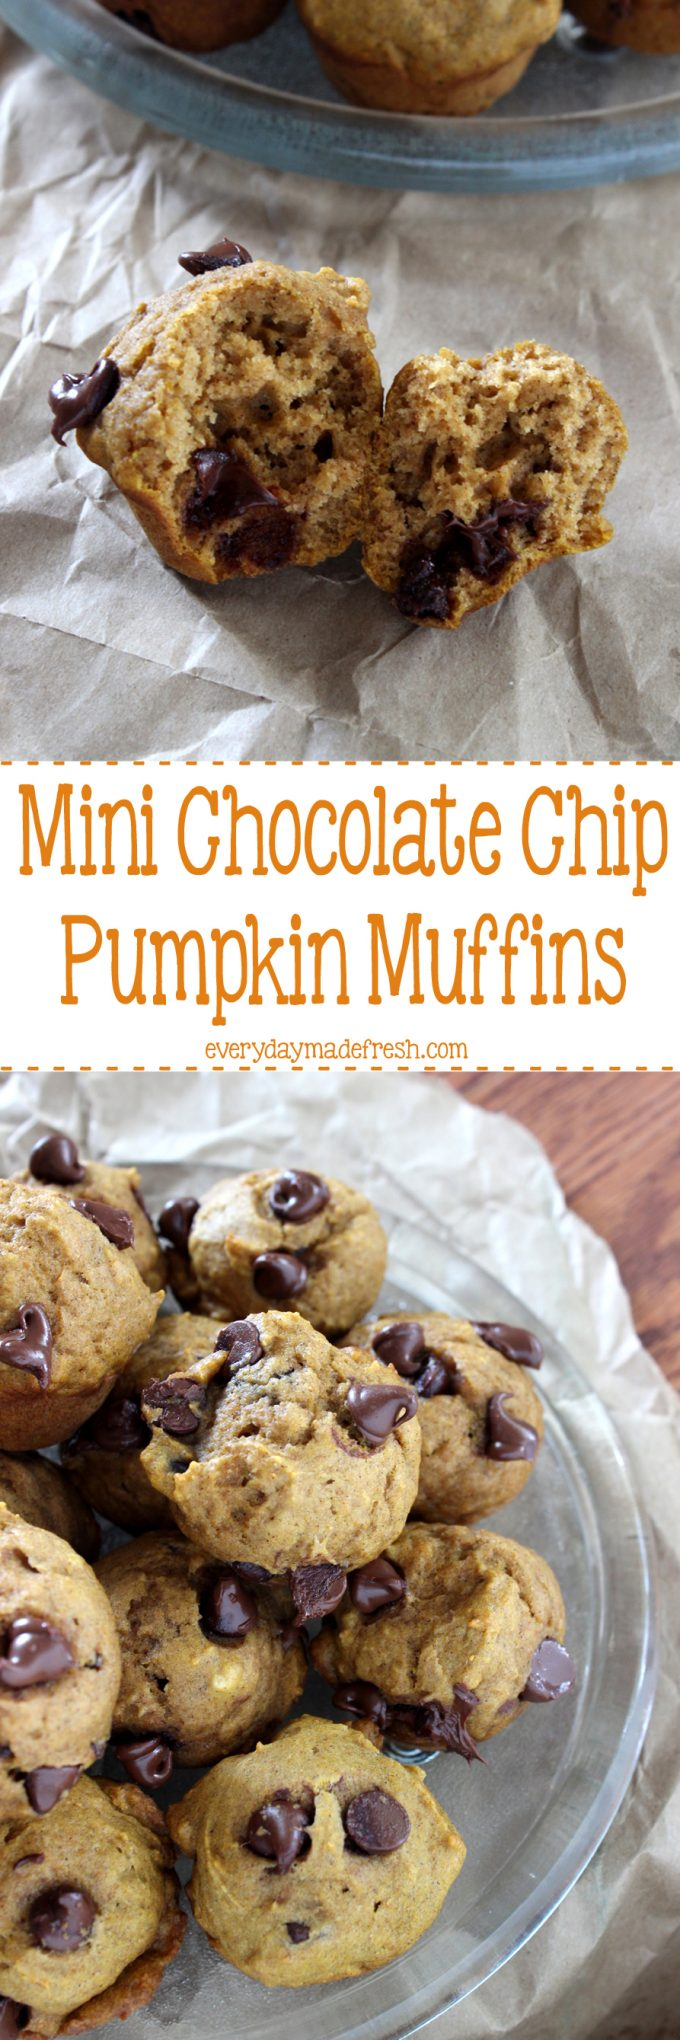 Packed with pumpkin and chocolate chips, these Mini Chocolate Chip Pumpkin Muffins are simple to make, and a great way to enjoy the flavors of fall! | EverydayMadeFresh.com